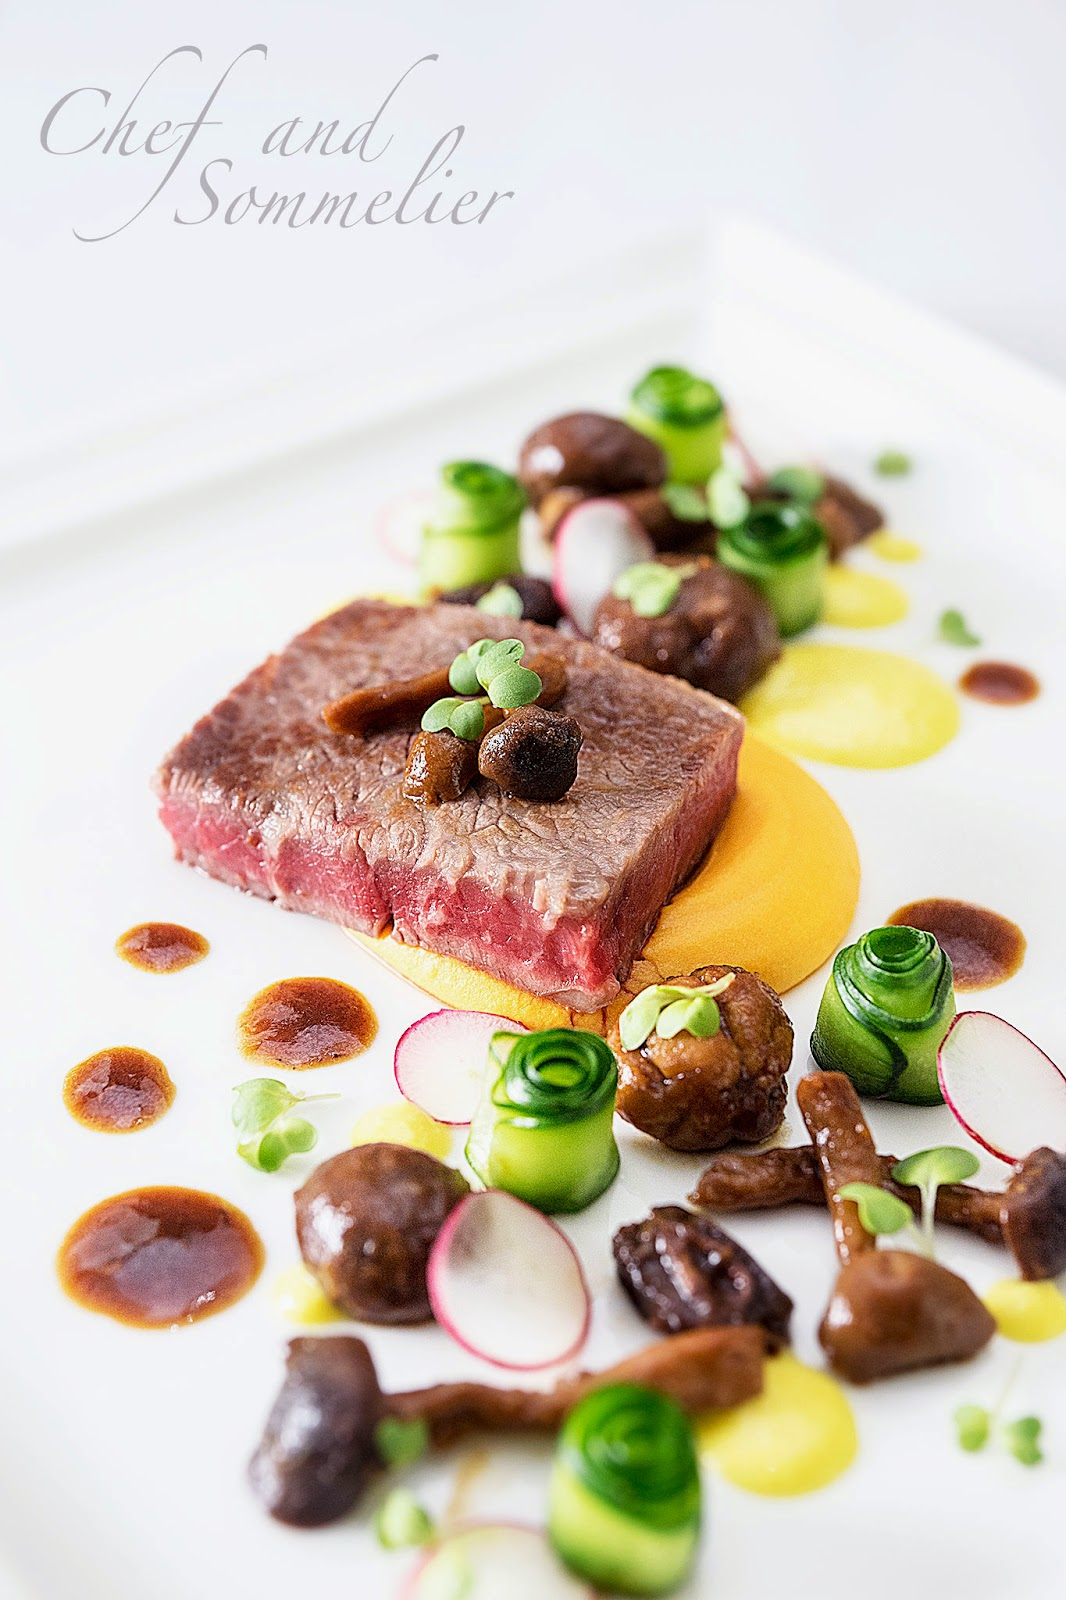 Chef and sommelier wagyu steak with braised chestnut and for What is sweet potato puree